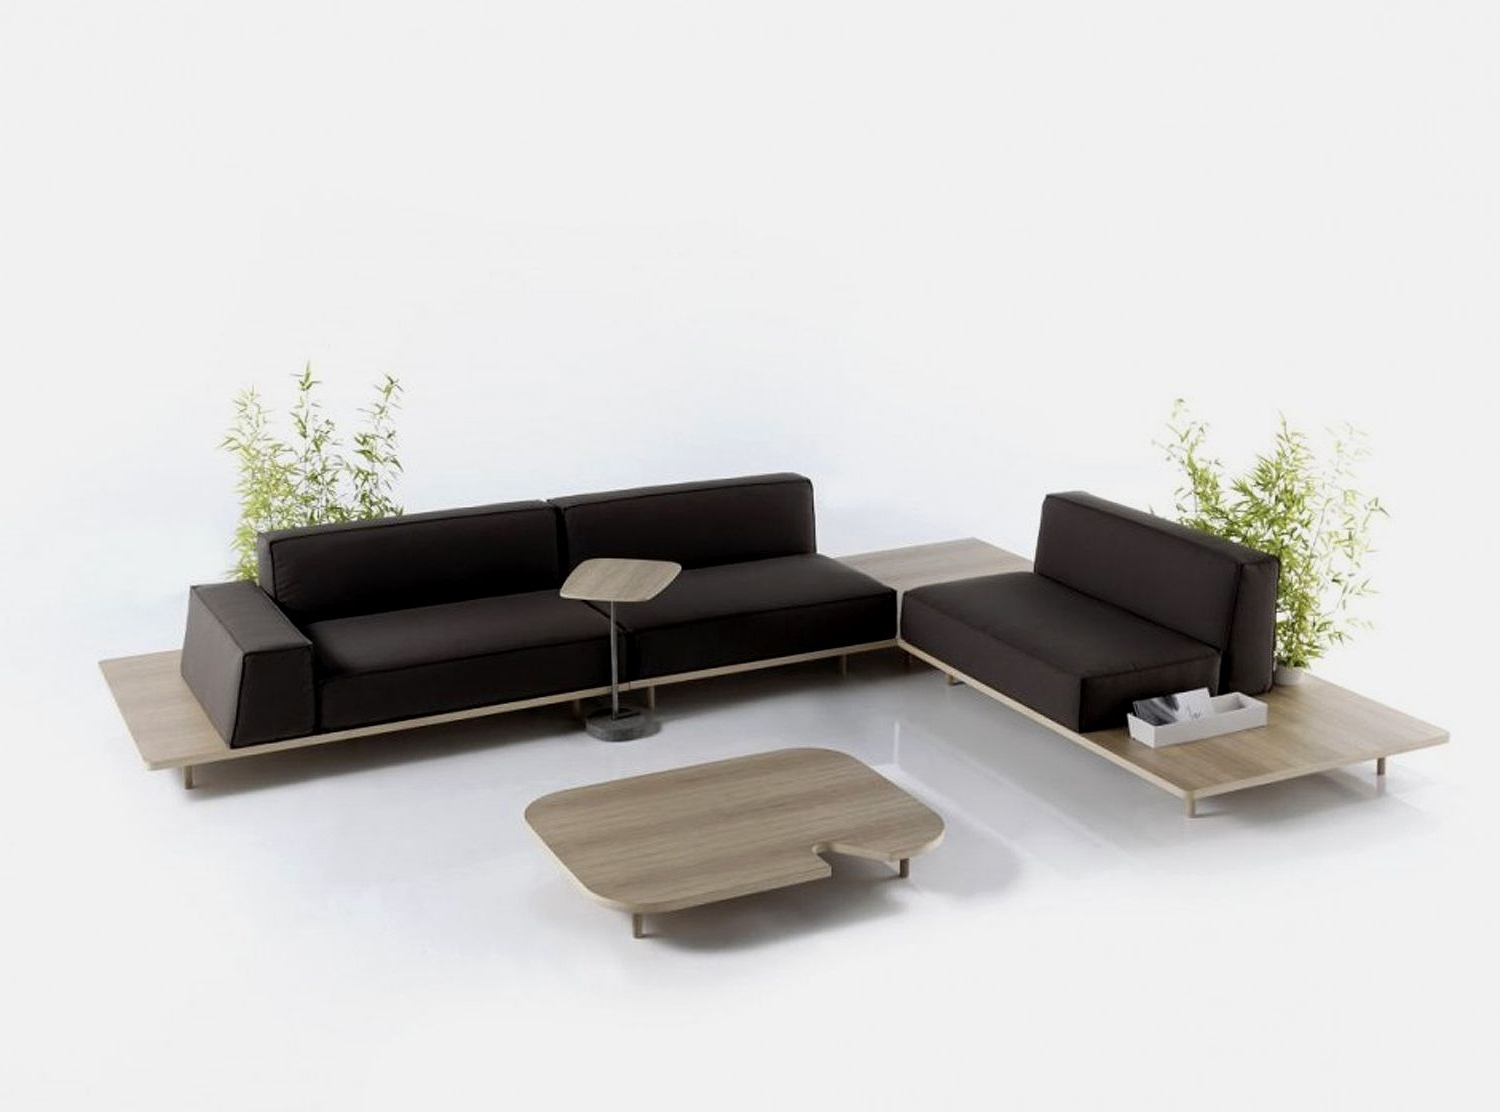 Sofa Furniture, Modern And With Regard To Widely Used Contemporary Sofas And Chairs (View 11 of 15)